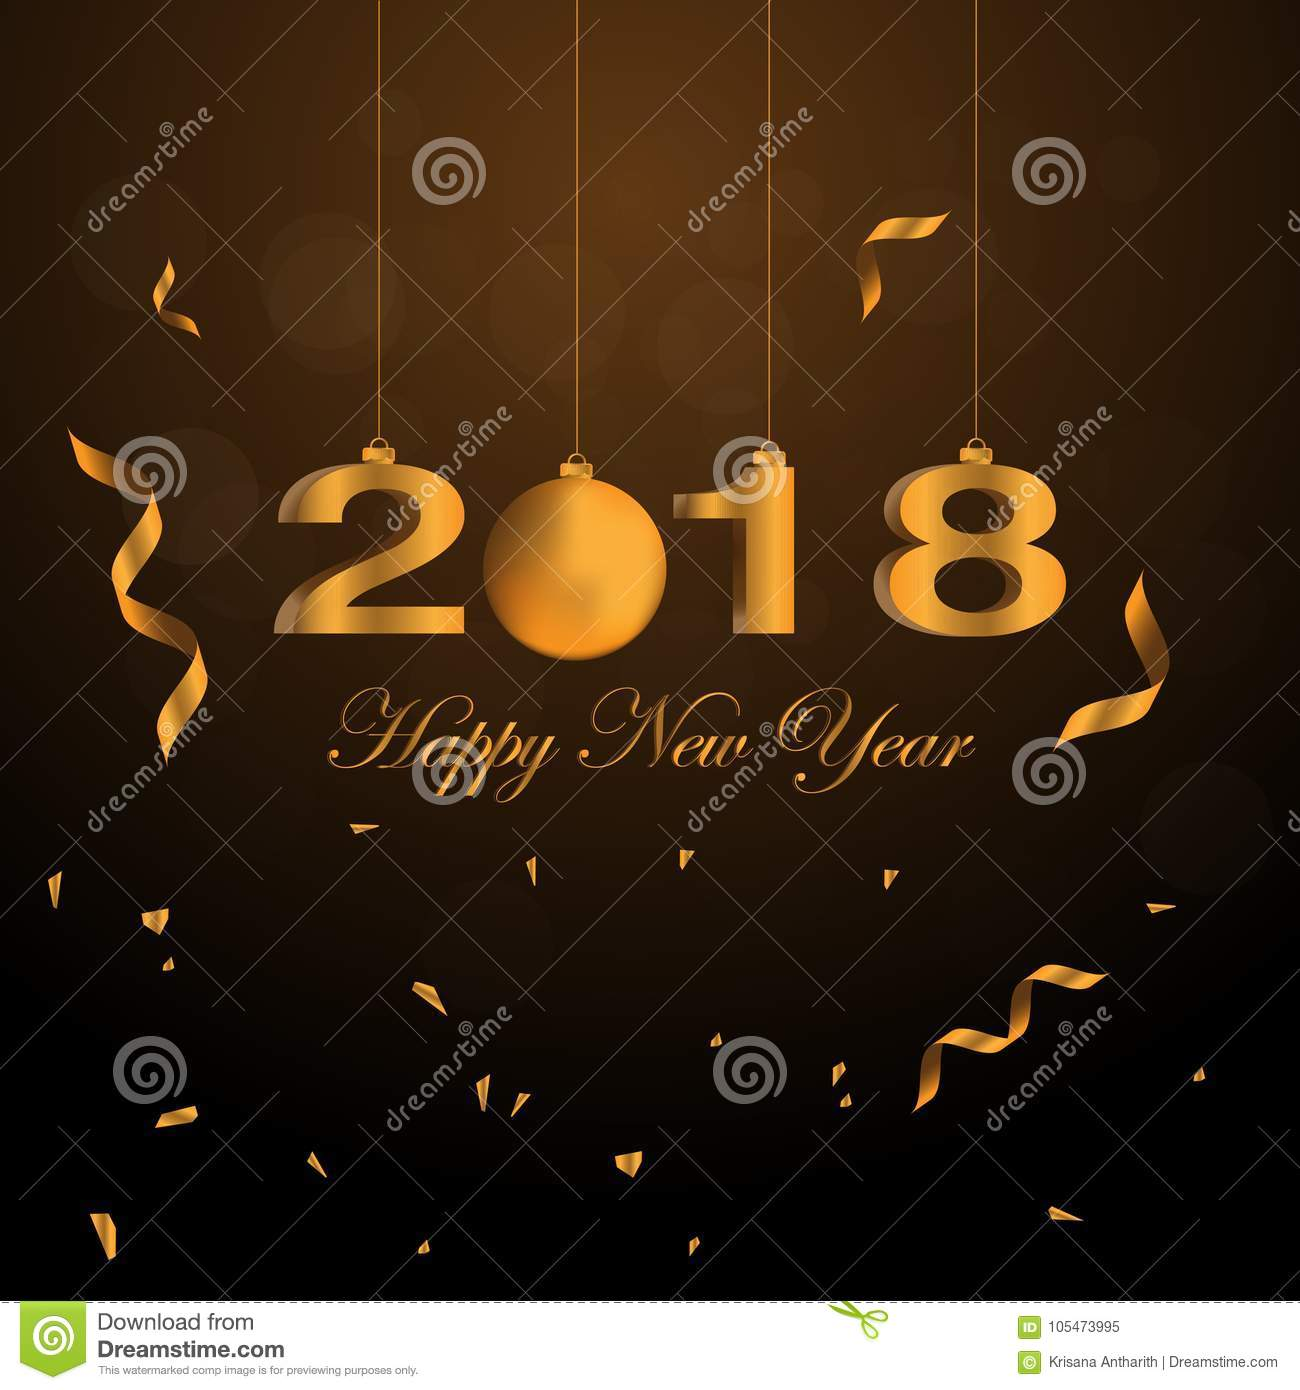 2018 Happy New Year Numbers With Golden Color Background Stock     Download 2018 Happy New Year Numbers With Golden Color Background Stock  Illustration   Illustration of celebration